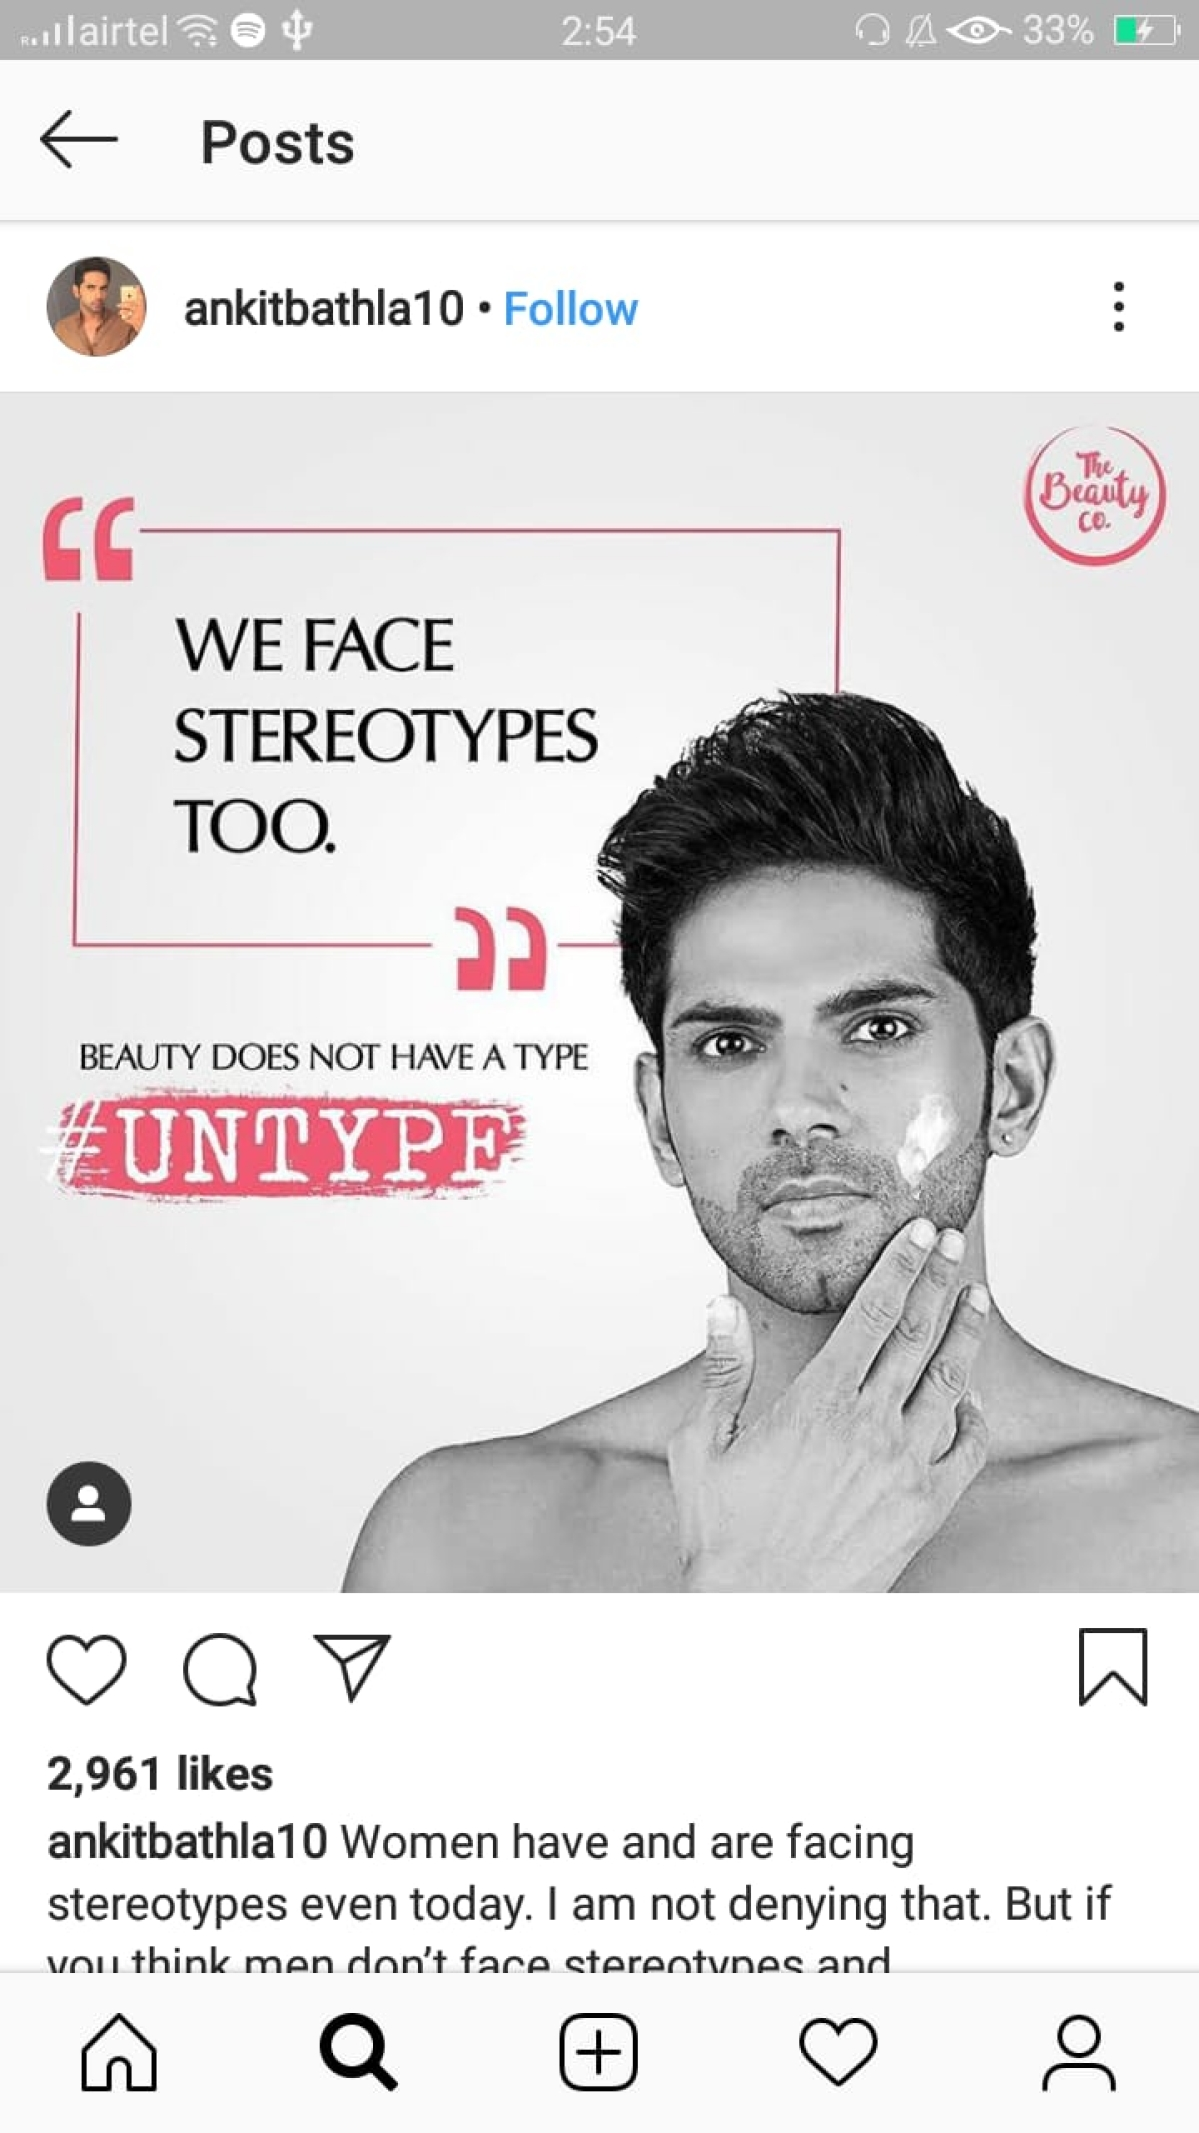 Yet another brand busts beauty myths